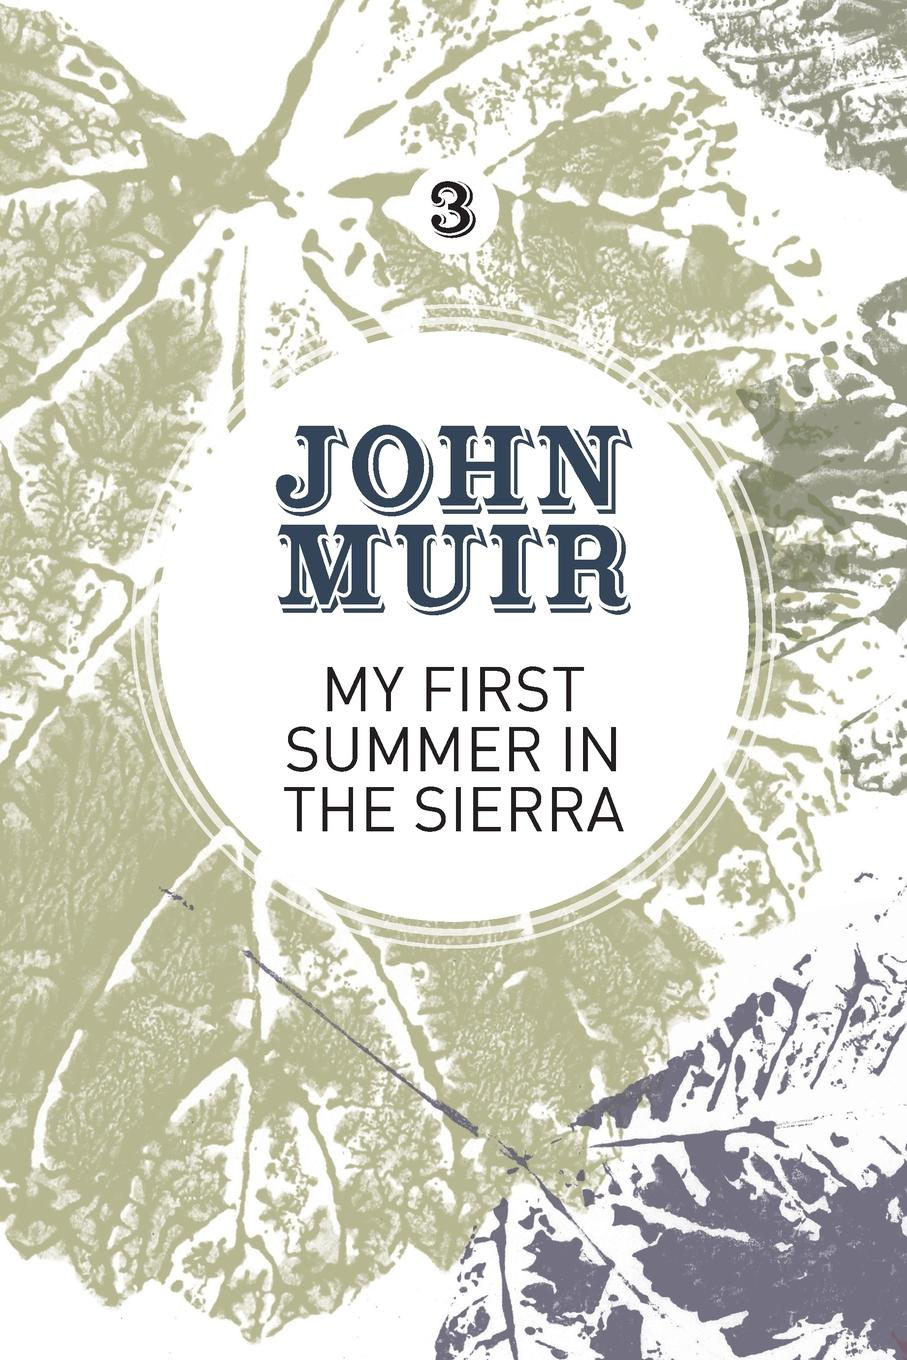 где купить John Muir My First Summer in the Sierra. The nature diary of a pioneering environmentalist недорого с доставкой